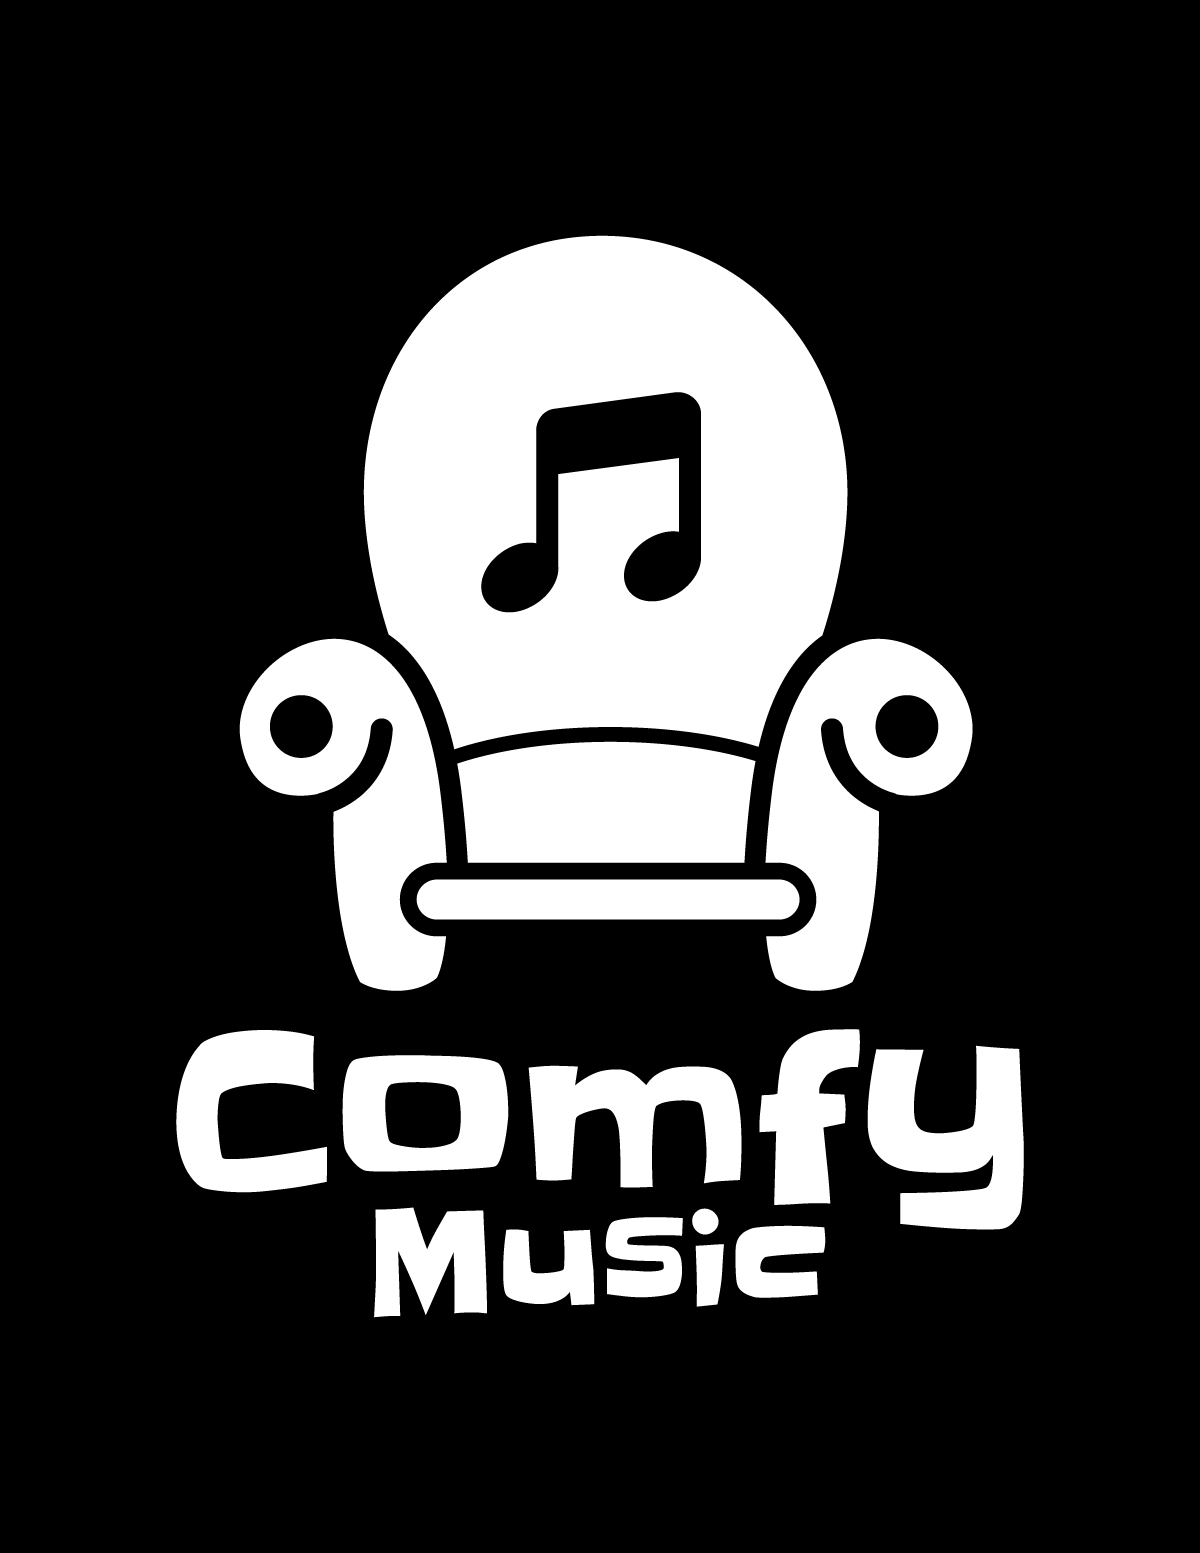 Comfy music logo white on black